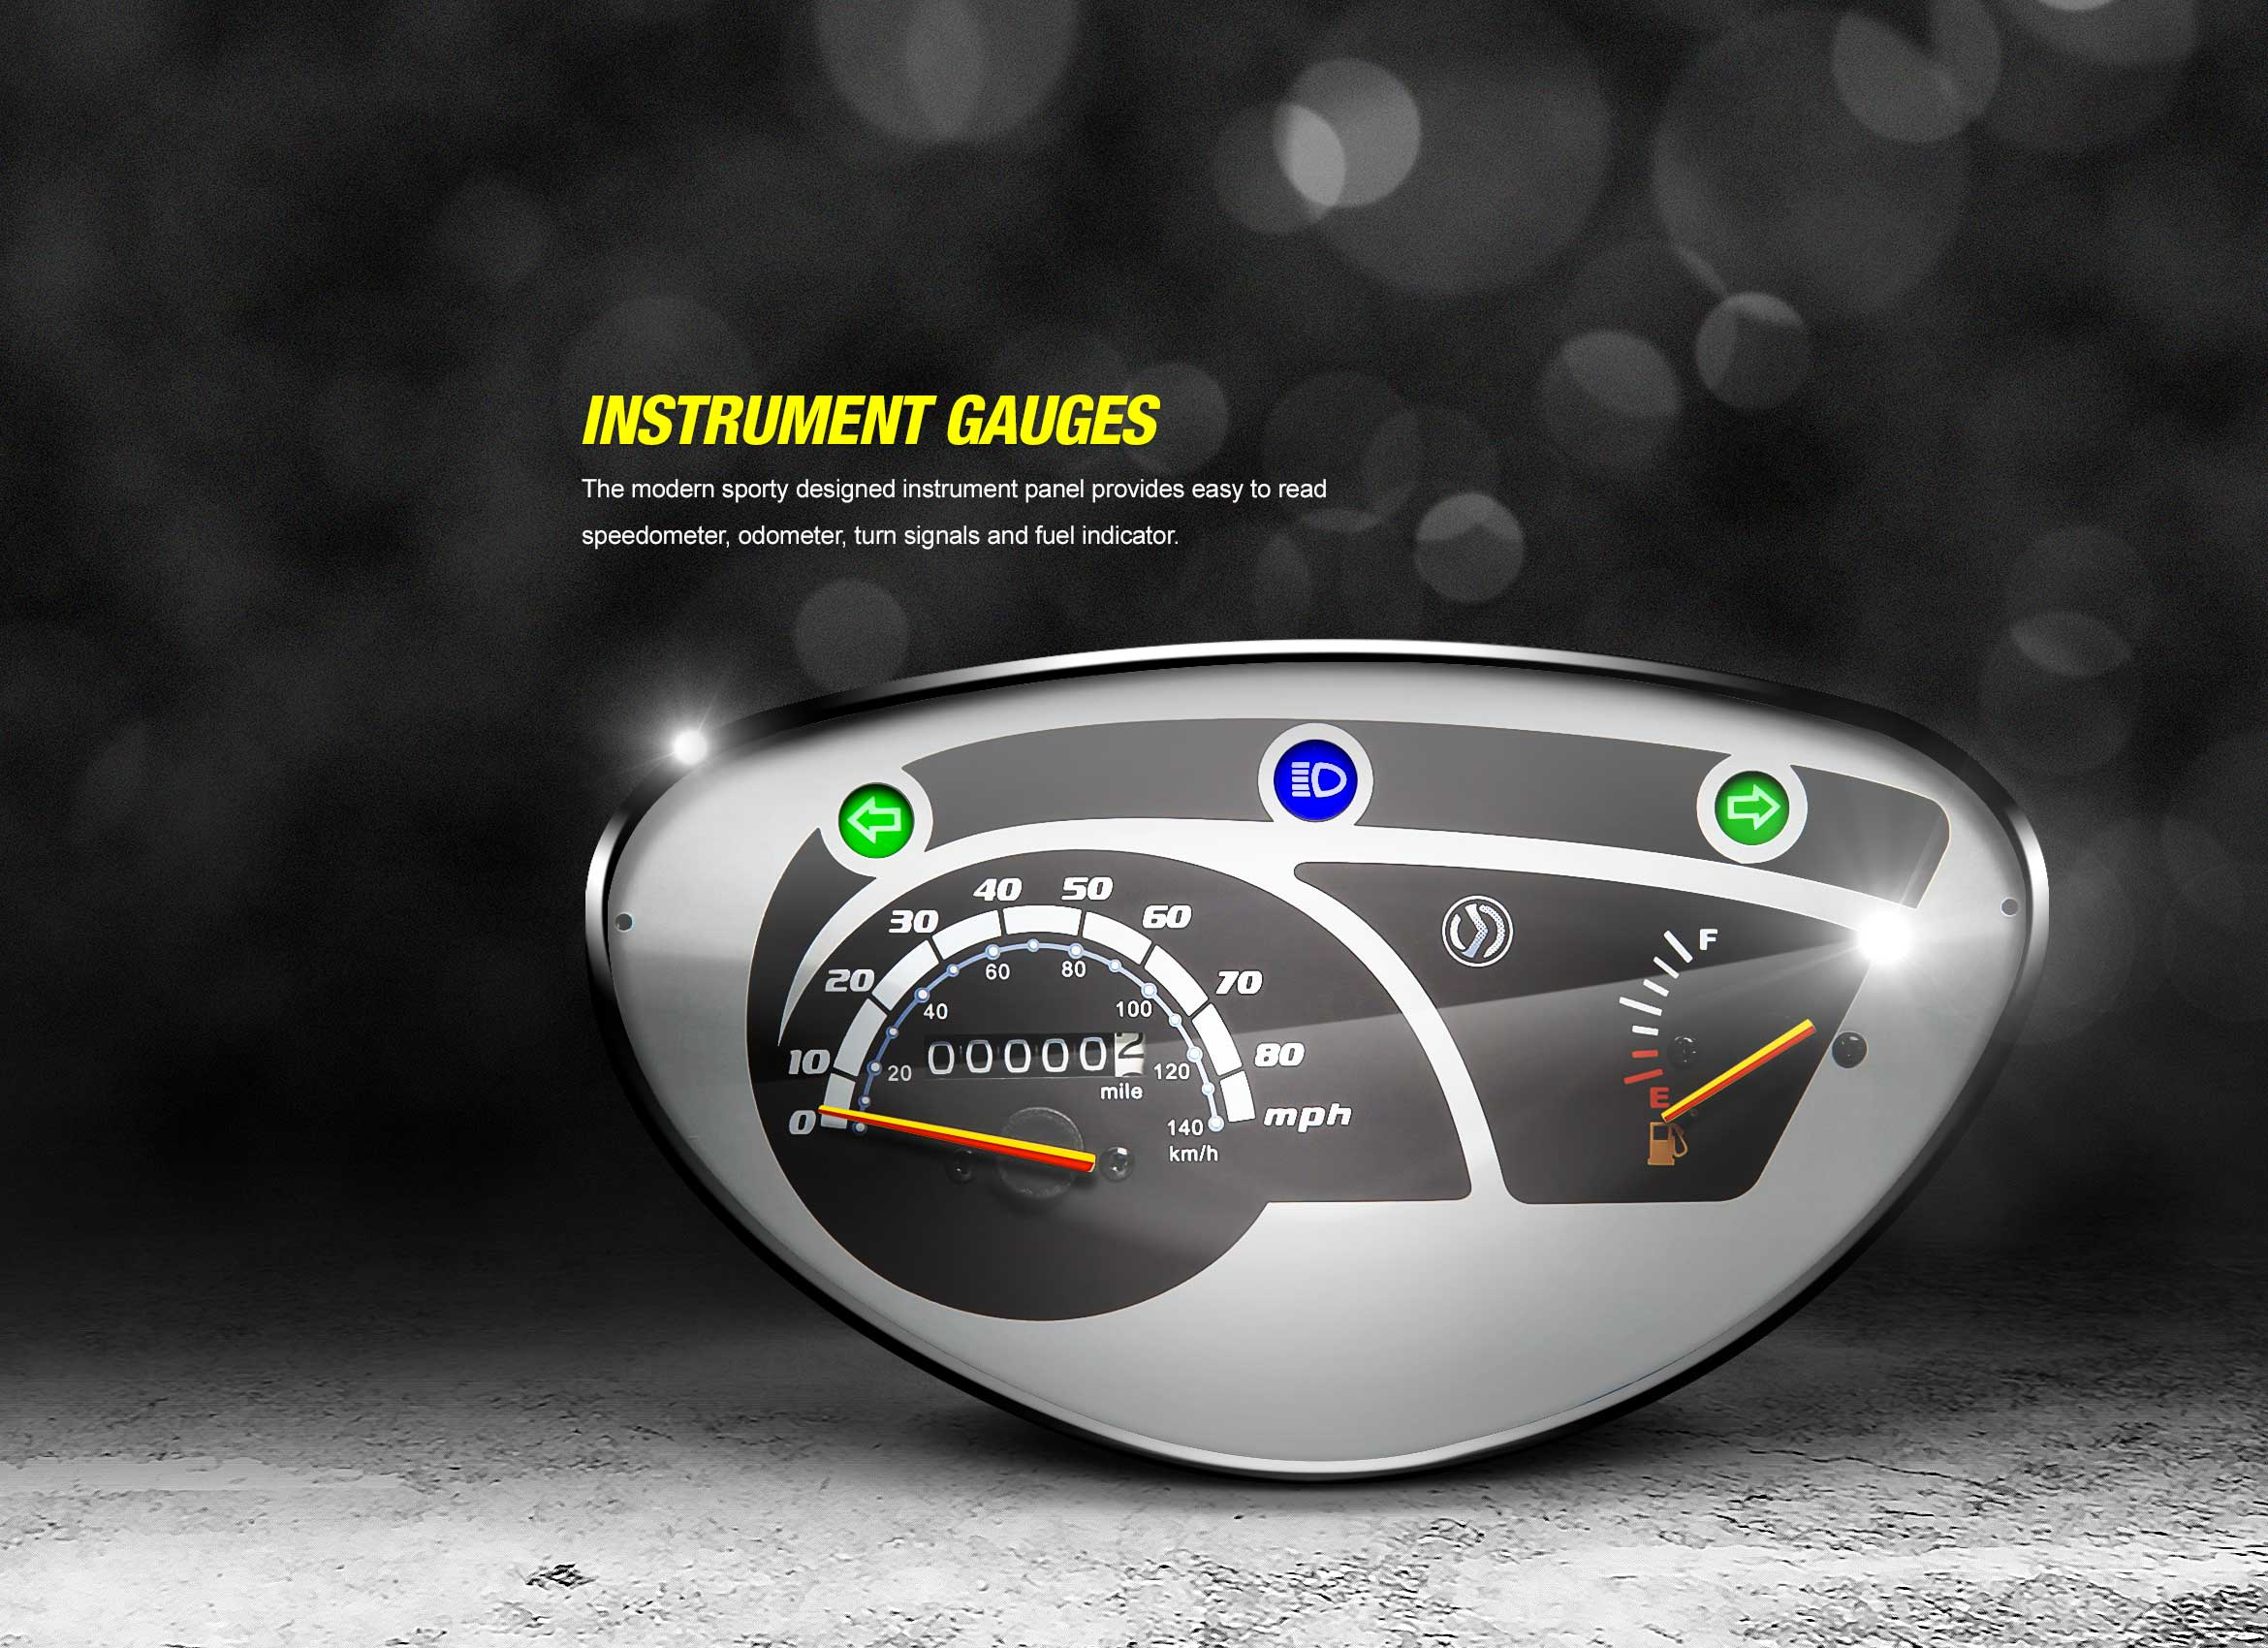 Instrument